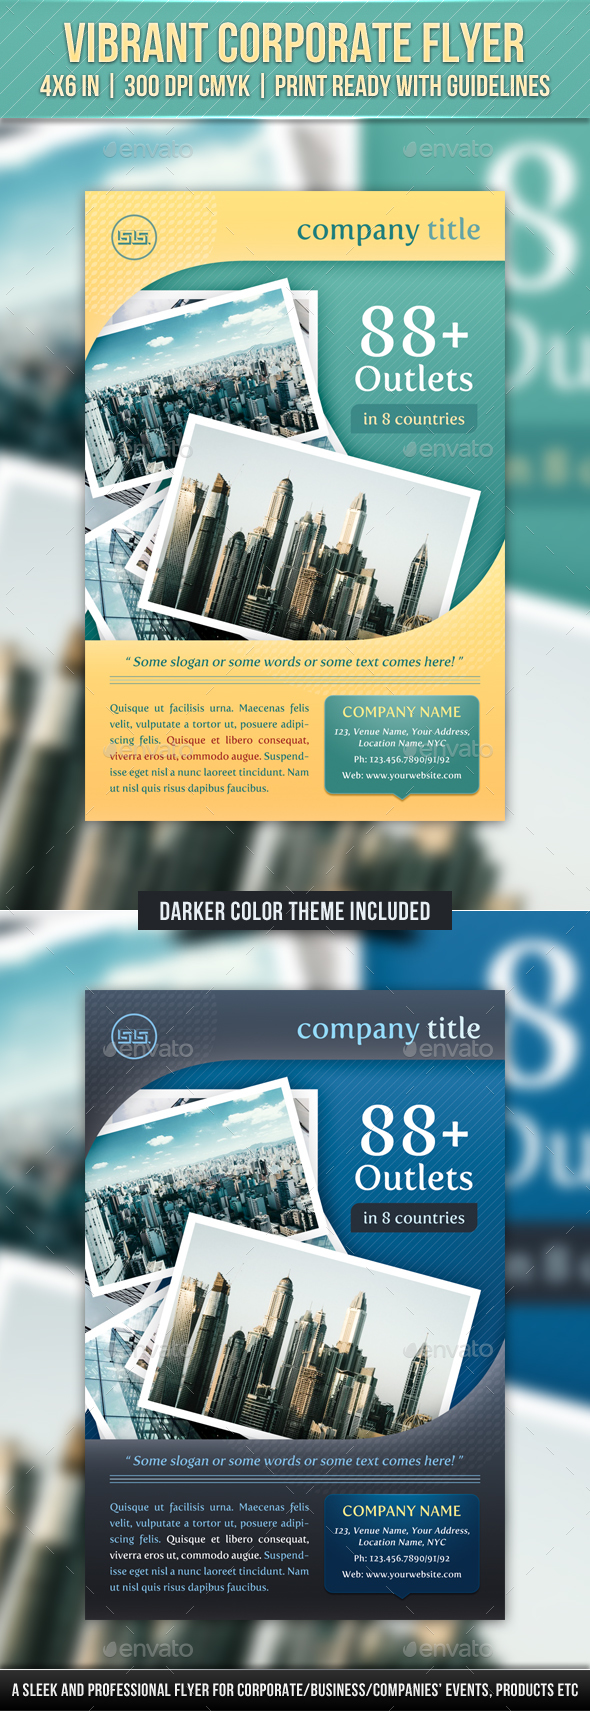 Vibrant Corporate Flyer - Corporate Flyers